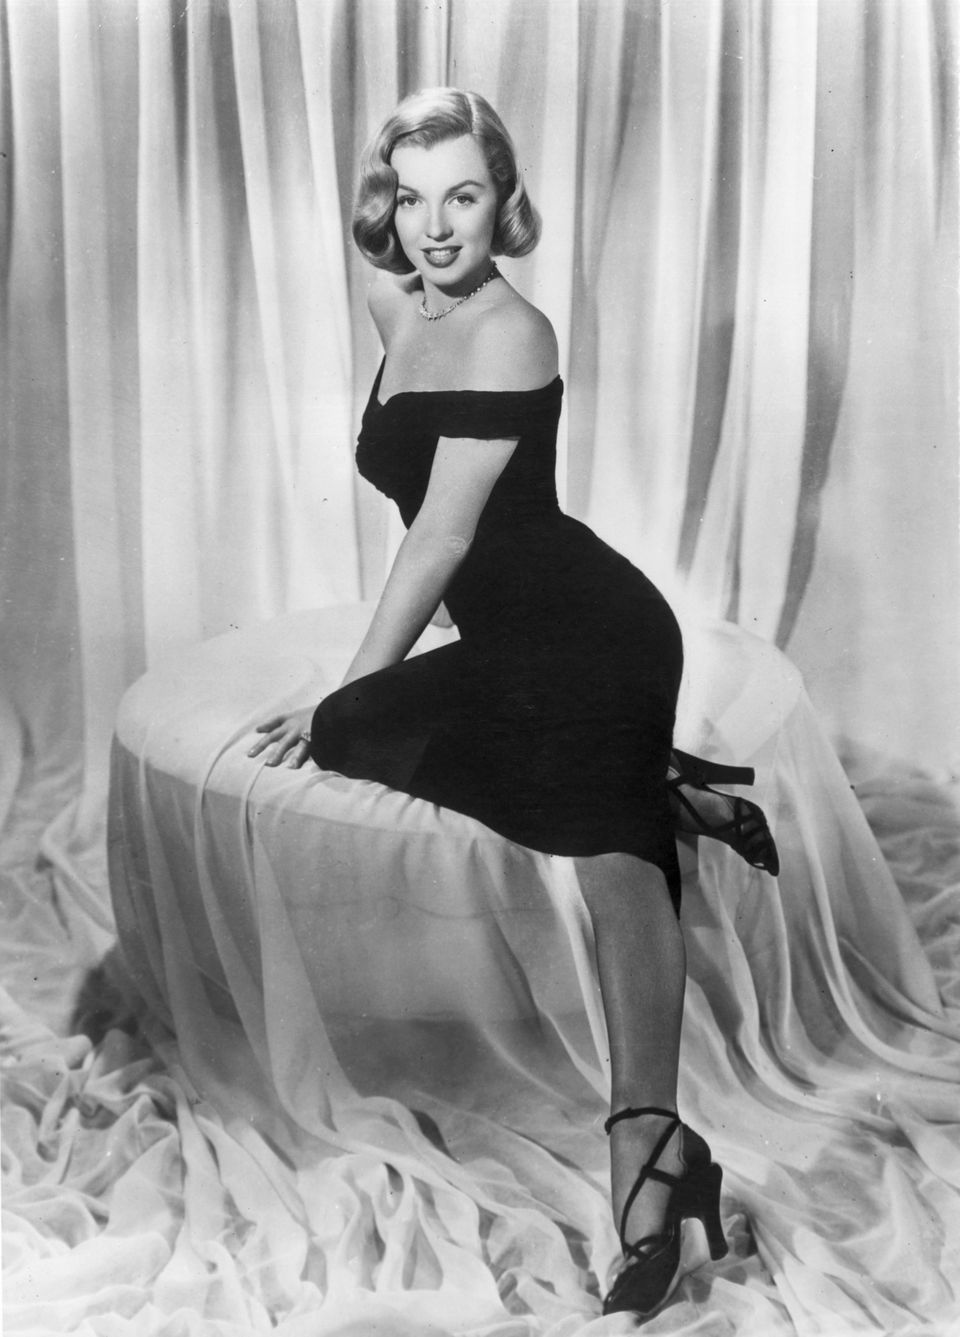 721cc83fb7f6 Hulton Archive via Getty Images. The actress wears a black cocktail dress  ...